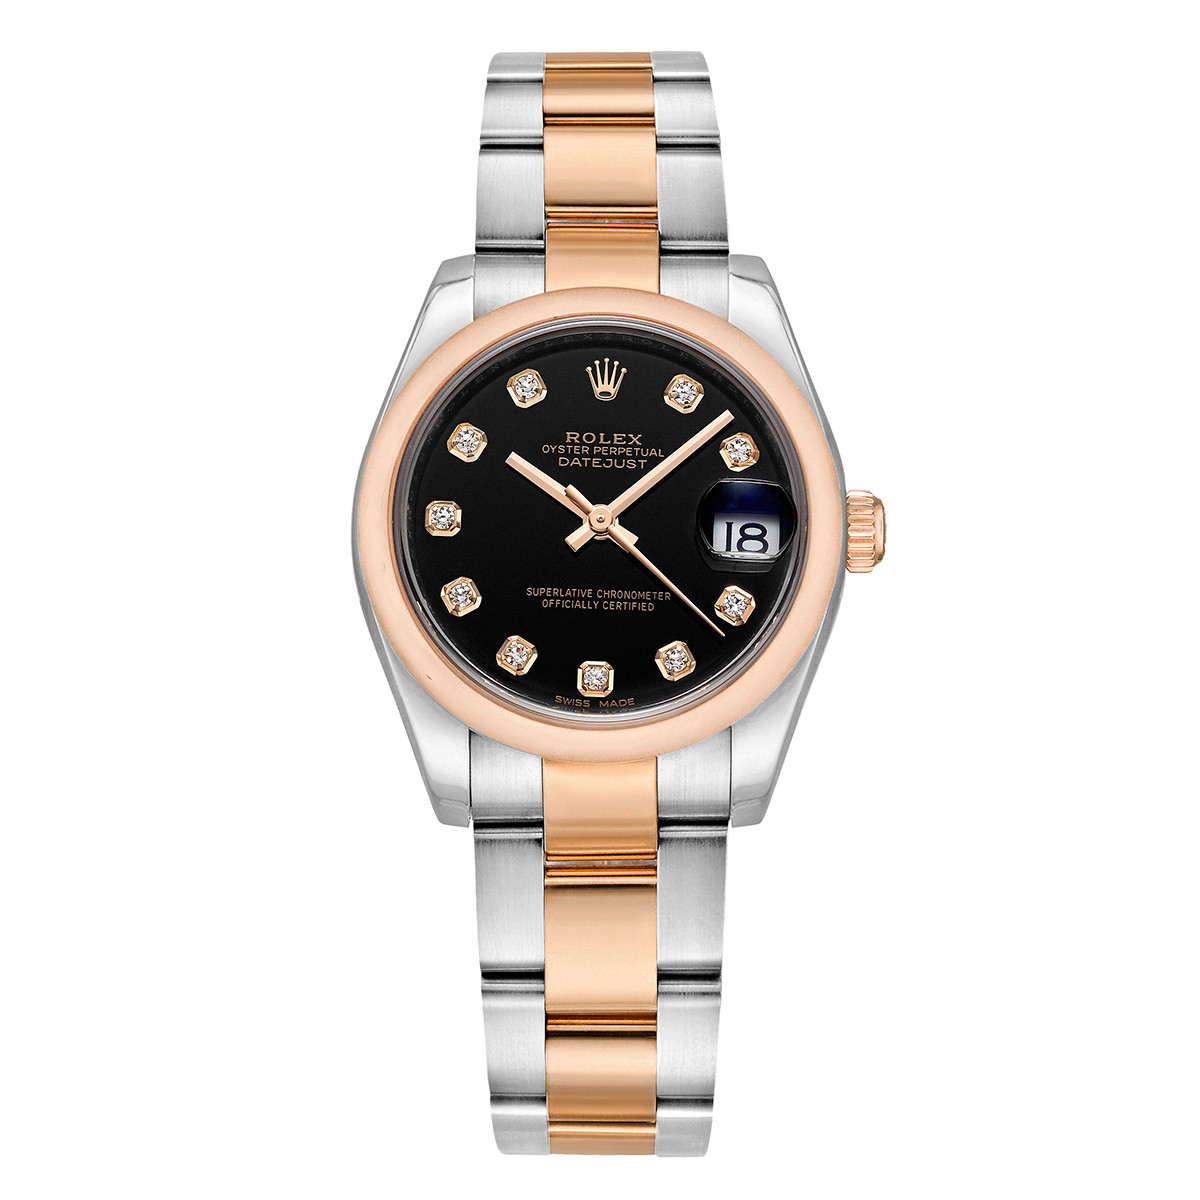 Datejust 31 Everose Rolesor (178241-0015)